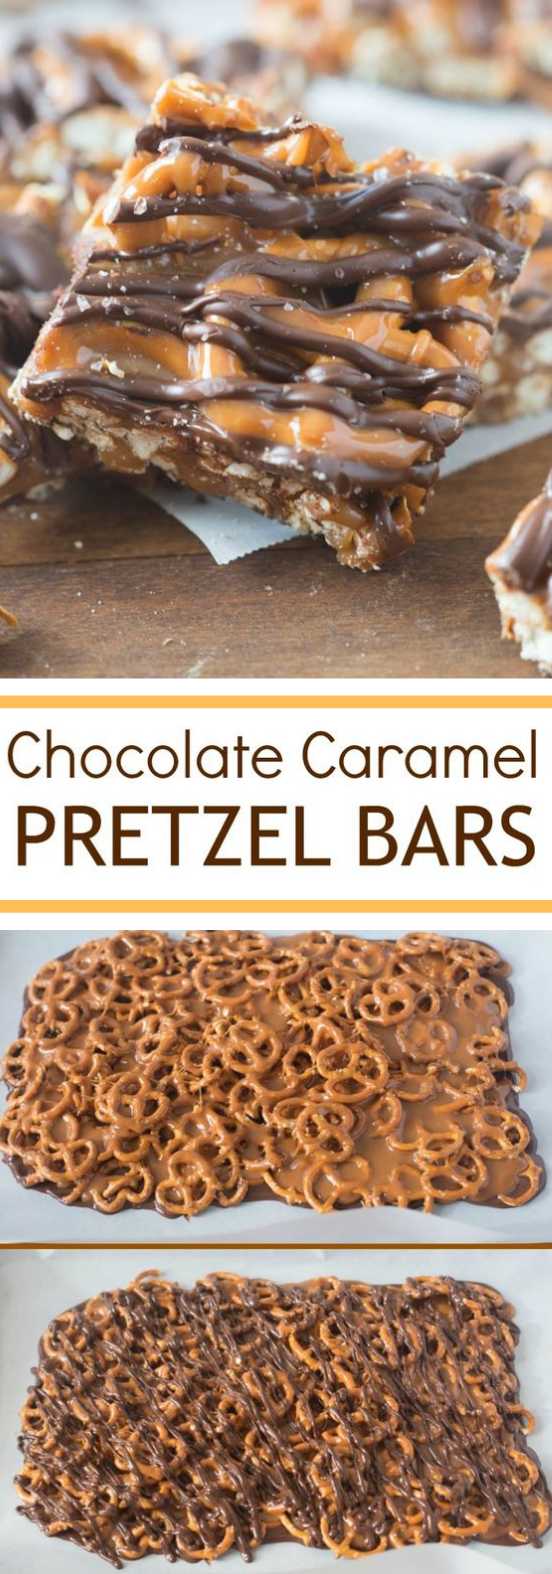 SALTED CHOCOLATE AND CARAMEL PRETZEL BARS #chocolate #bars